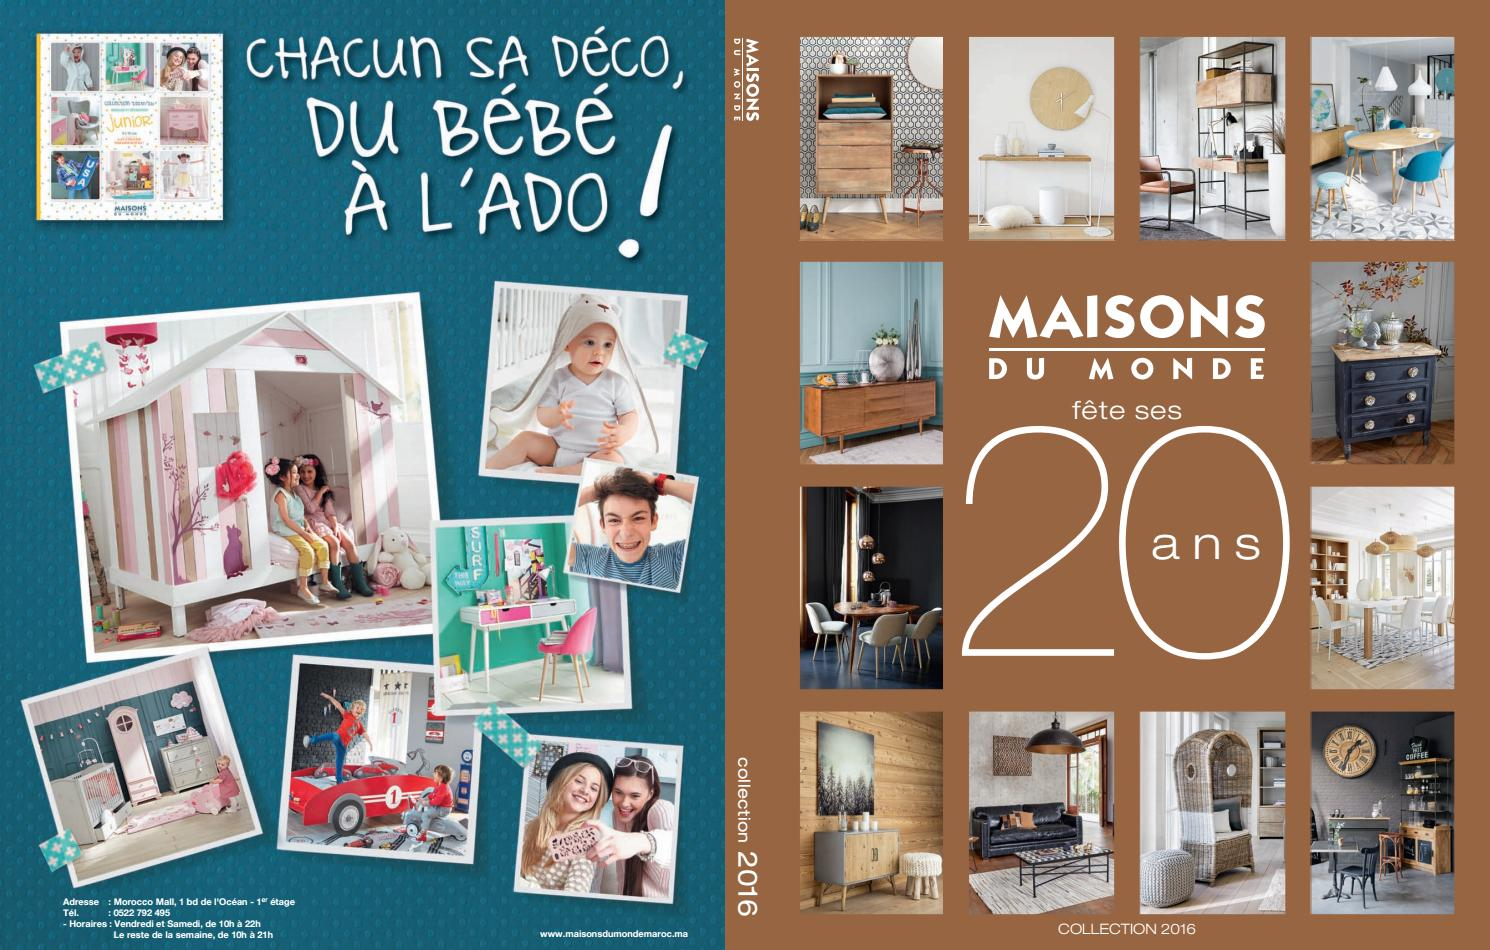 Maison Du Monde Perroquet catalogue maisons du mondemaisonsdumonde - issuu